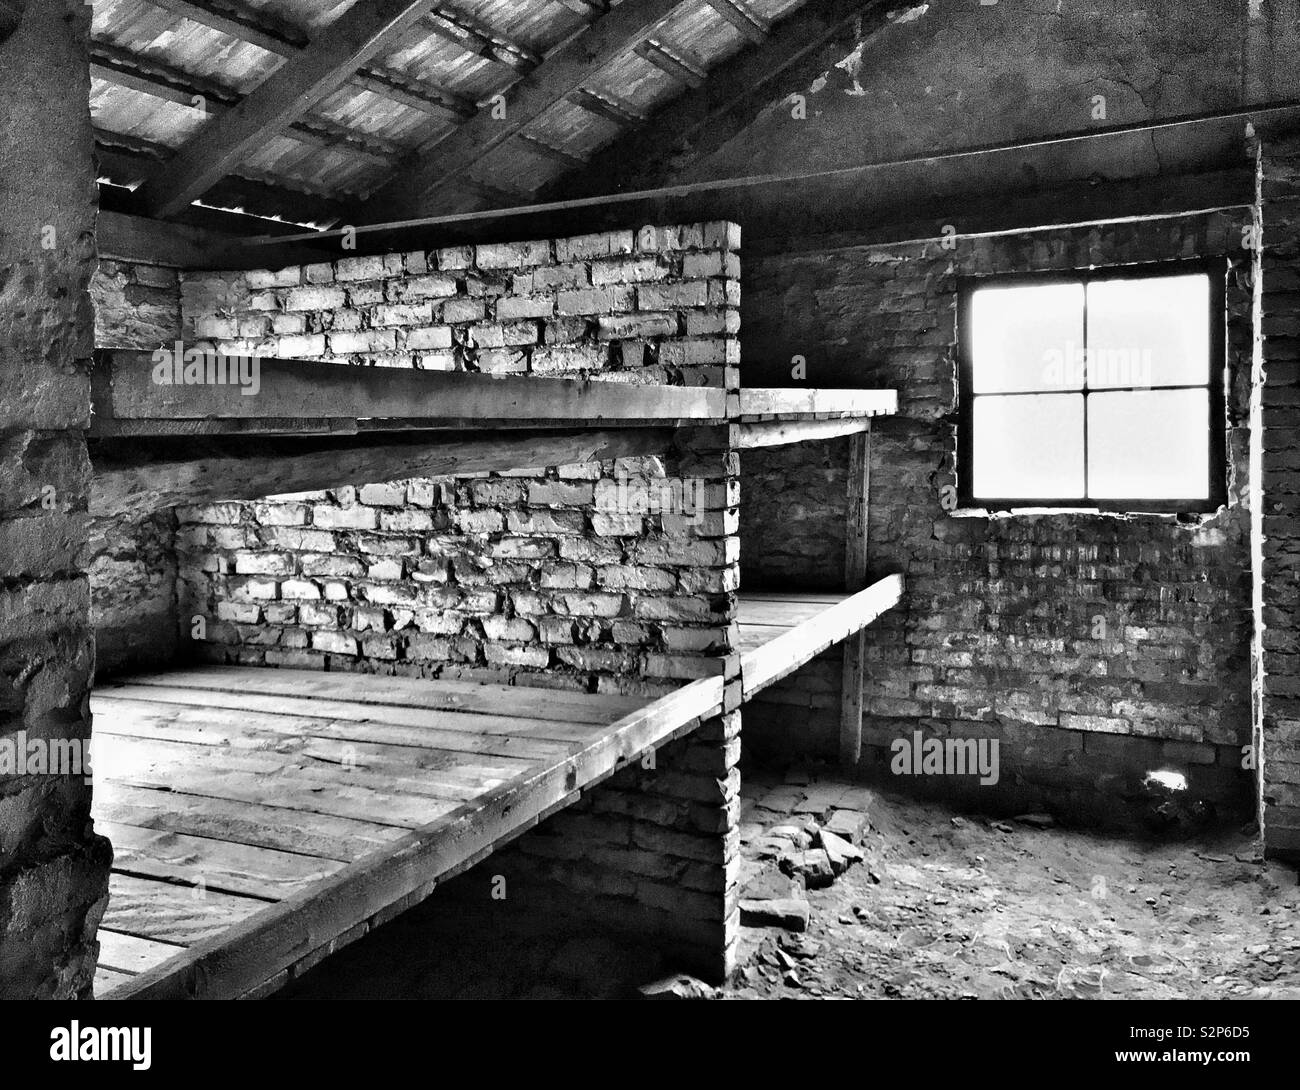 The interior of one of the surviving huts at the Nazi Auschwitz II - Birkenau Concentration Camp-in Poland. This was the sleeping quarters where many people crammed together and some starved to death. - Stock Image